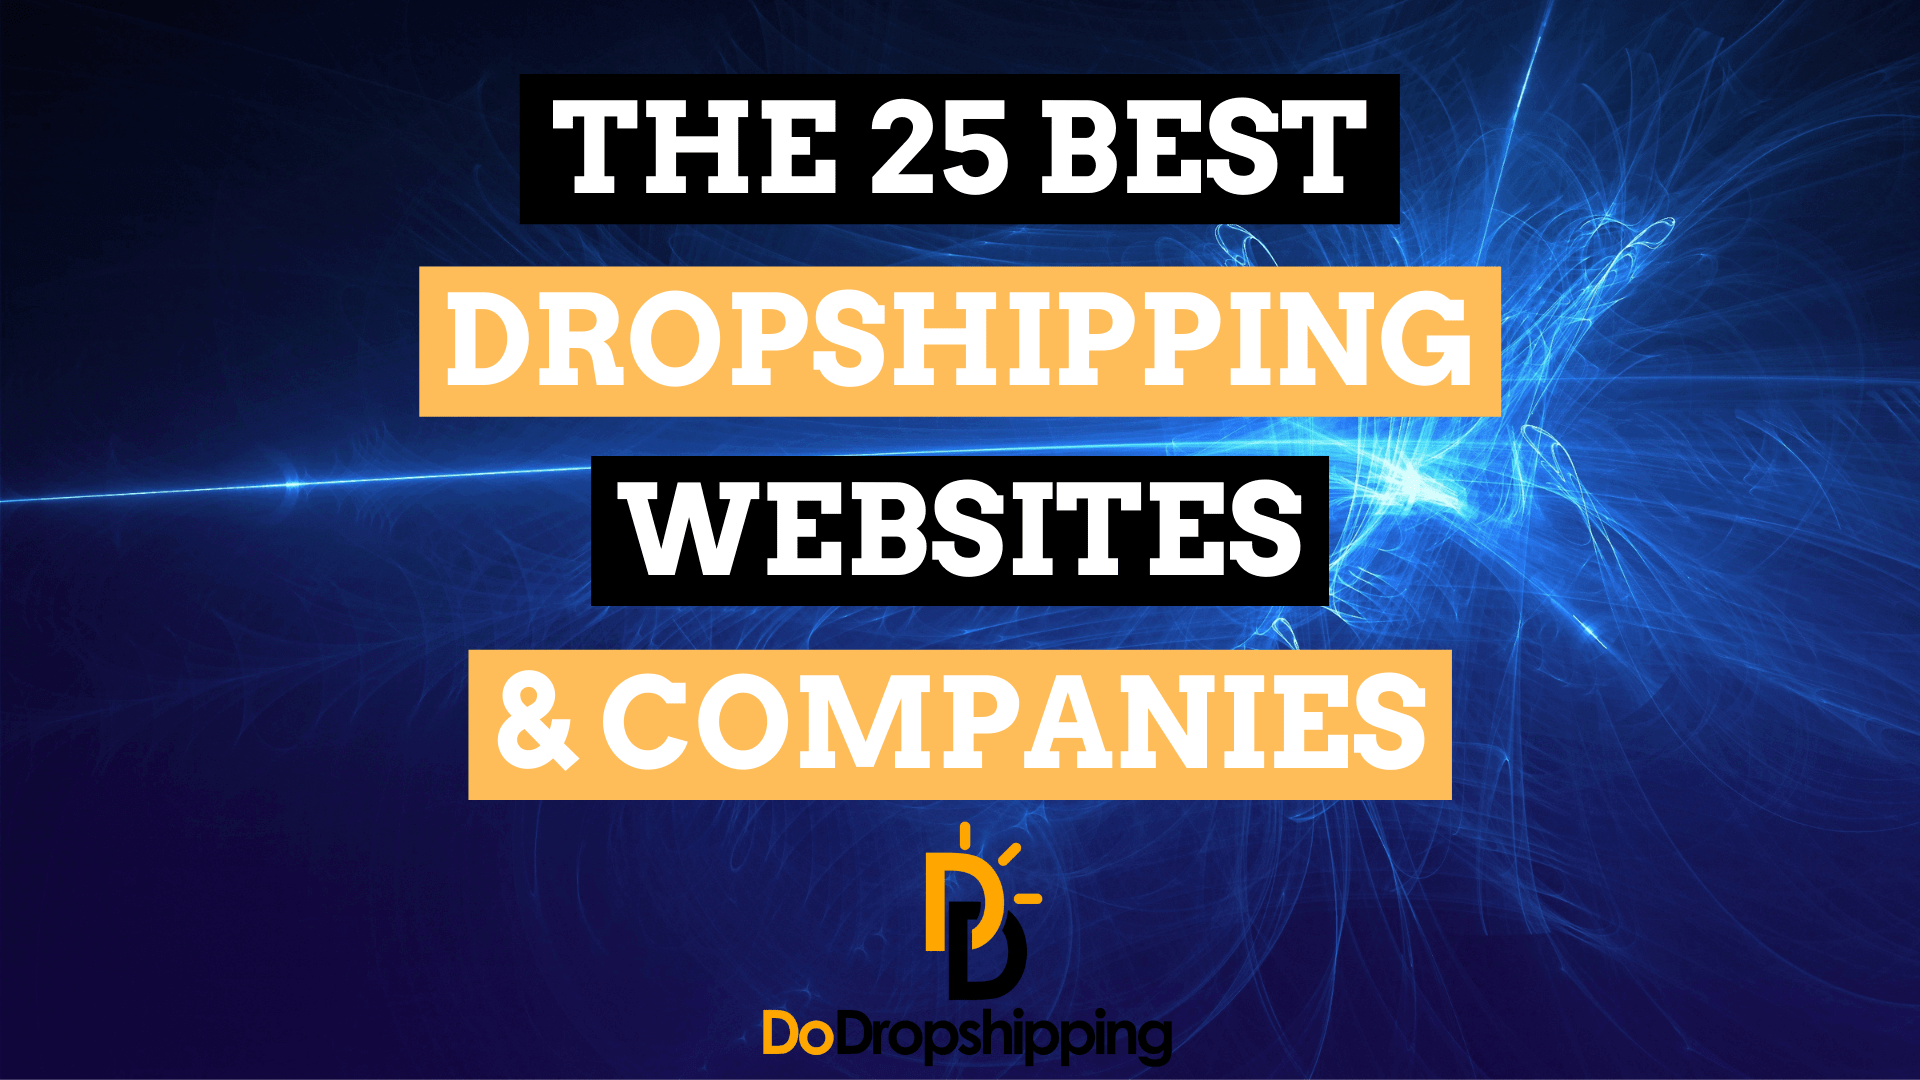 The 25 Best Dropshipping Websites & Companies for Your Store in 2021